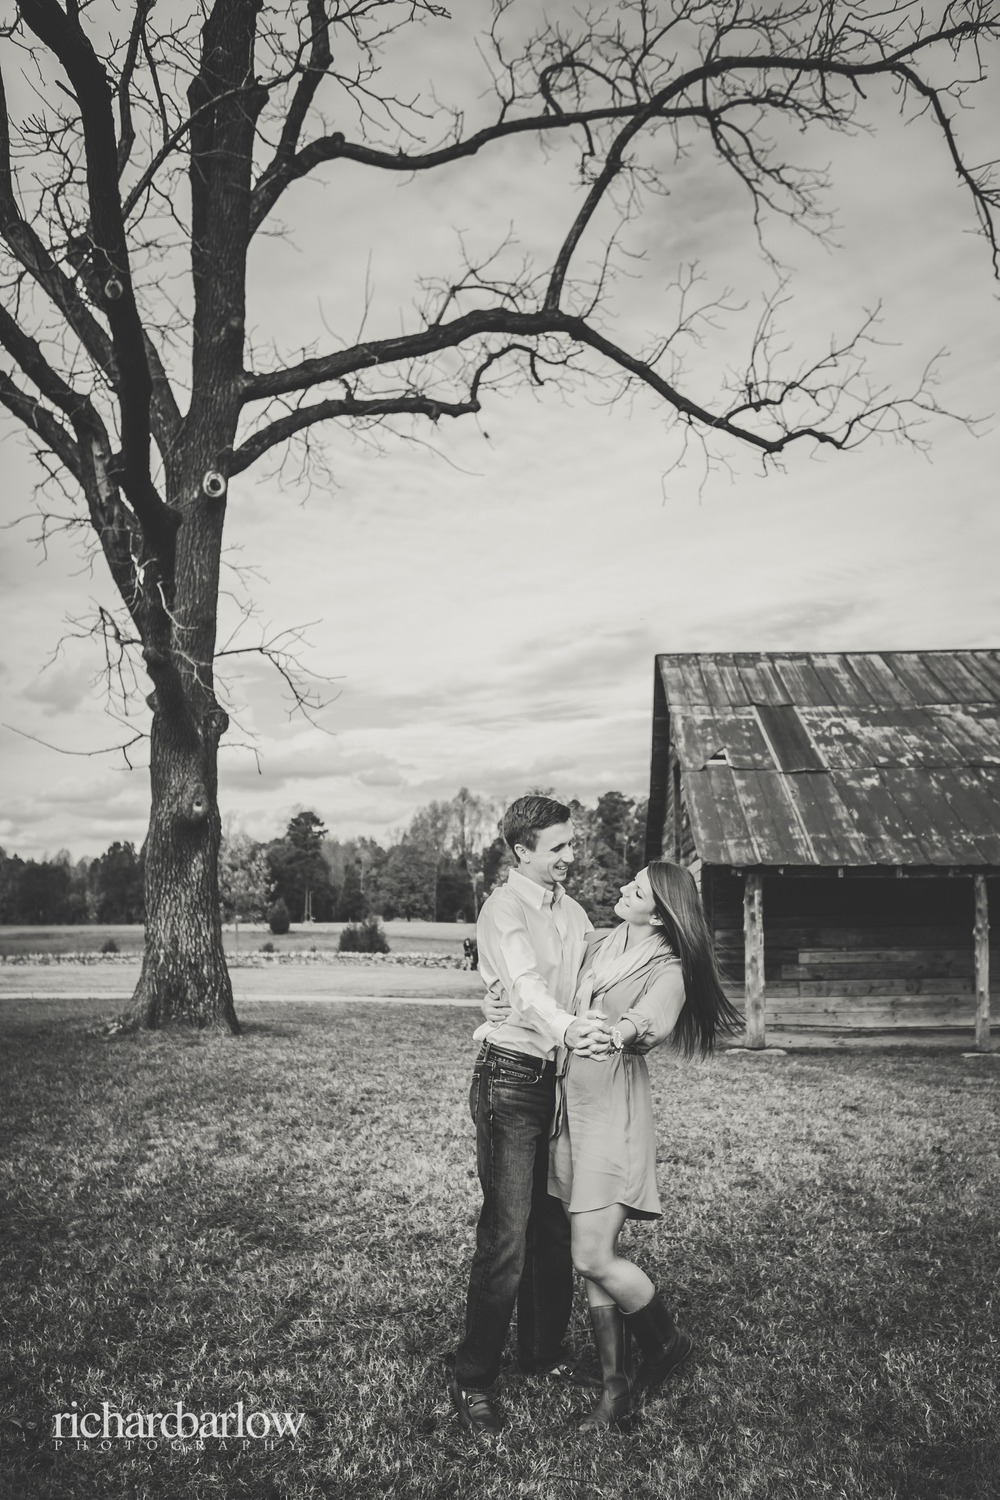 richard barlow photography - Graham and Lauren Engagement Session Wake Forest-11.jpg